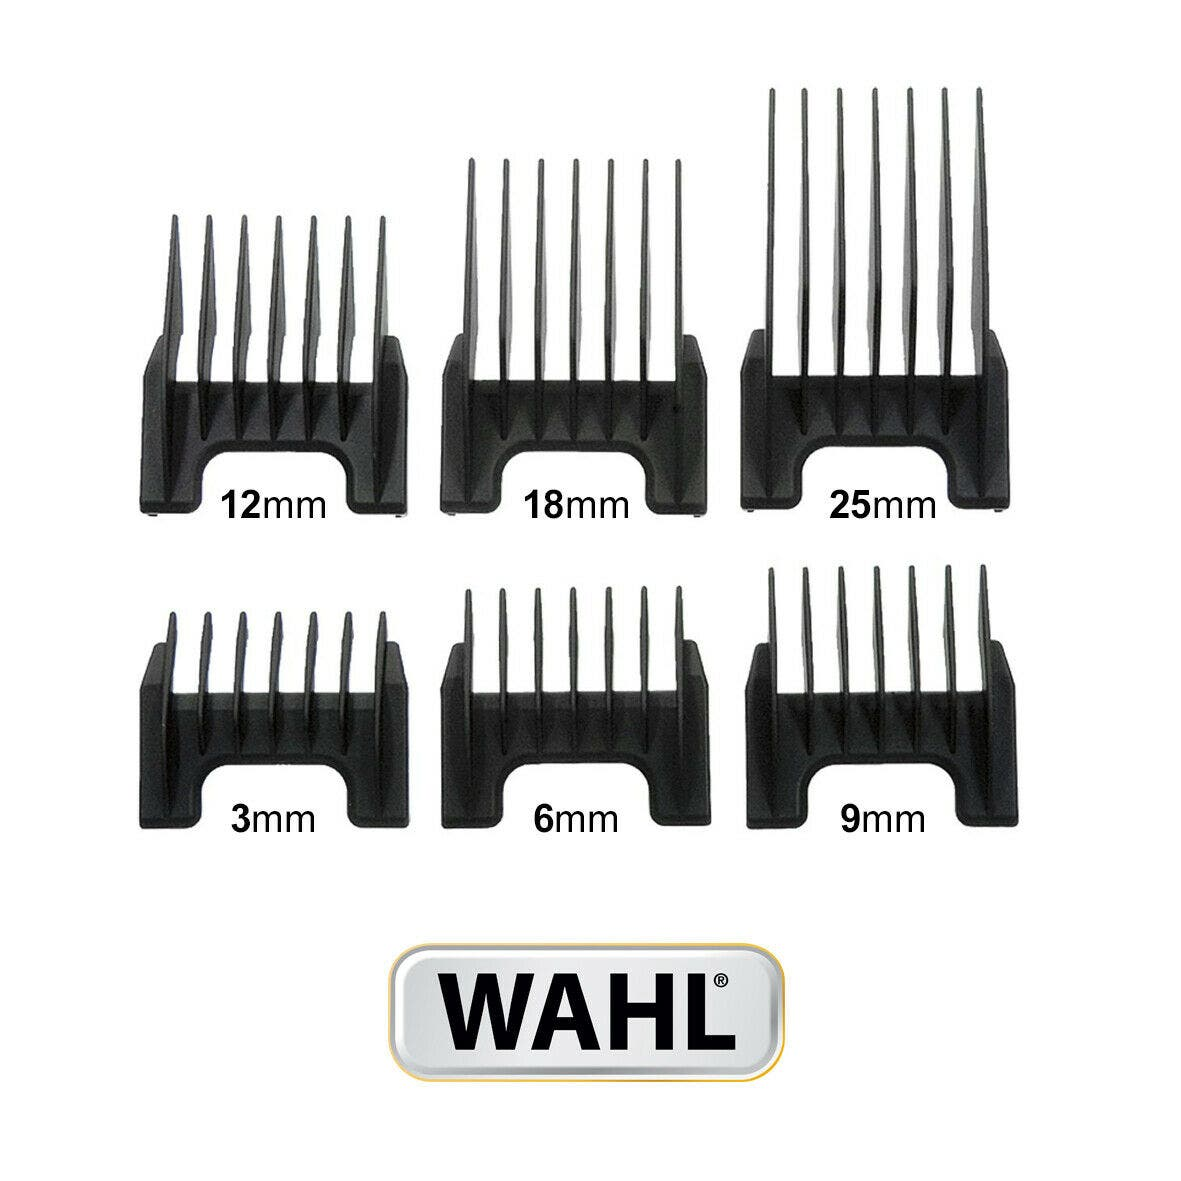 Wahl Plastic Guides Attachments Combs for Wahl Rex / Super Groom / Bravura / Arco / Pro Lithium